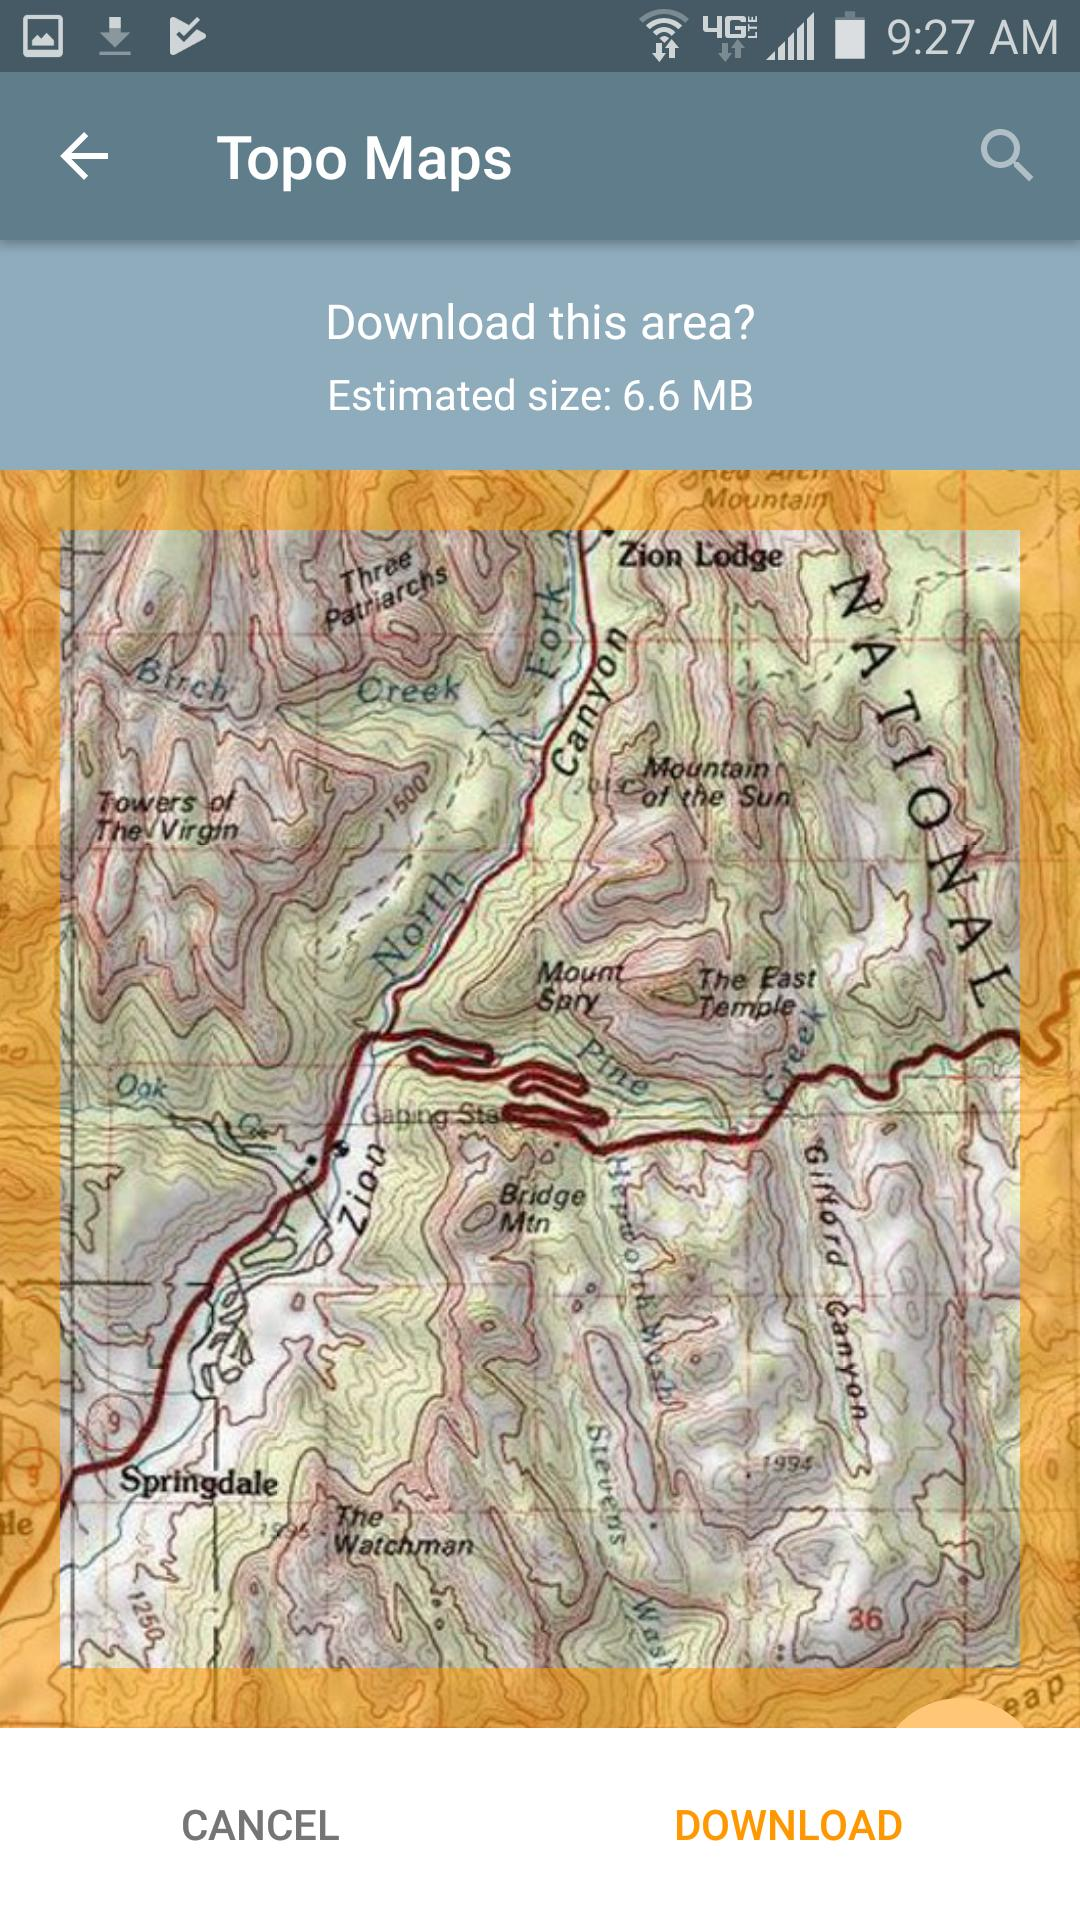 Topo Maps for Android - APK Download